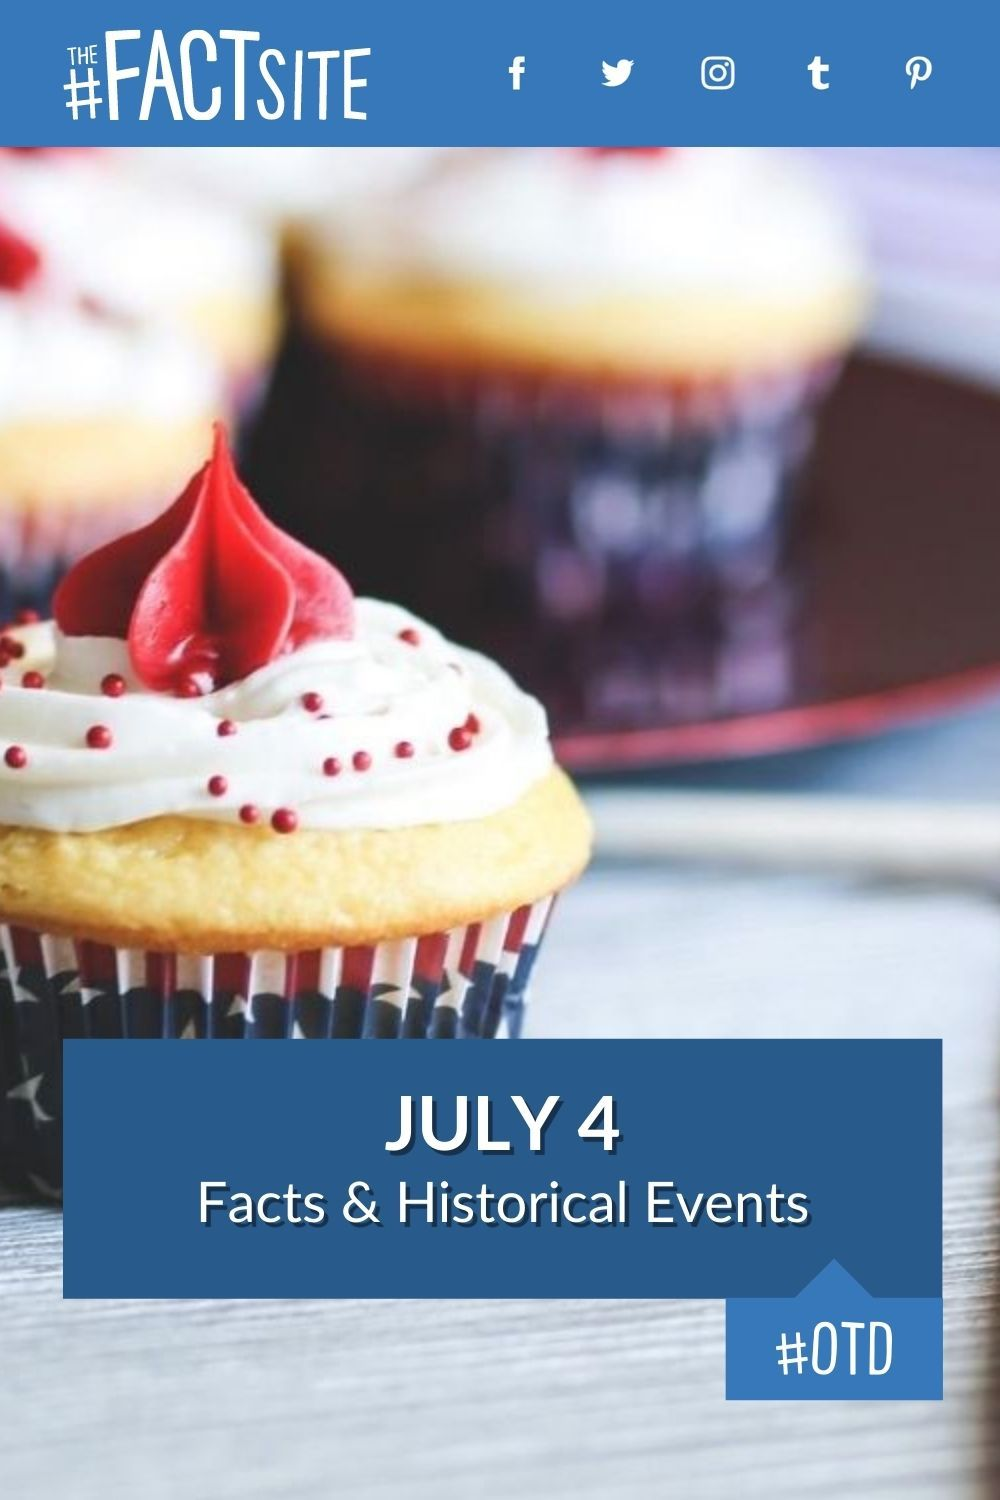 Facts & Historic Events That Happened on July 4